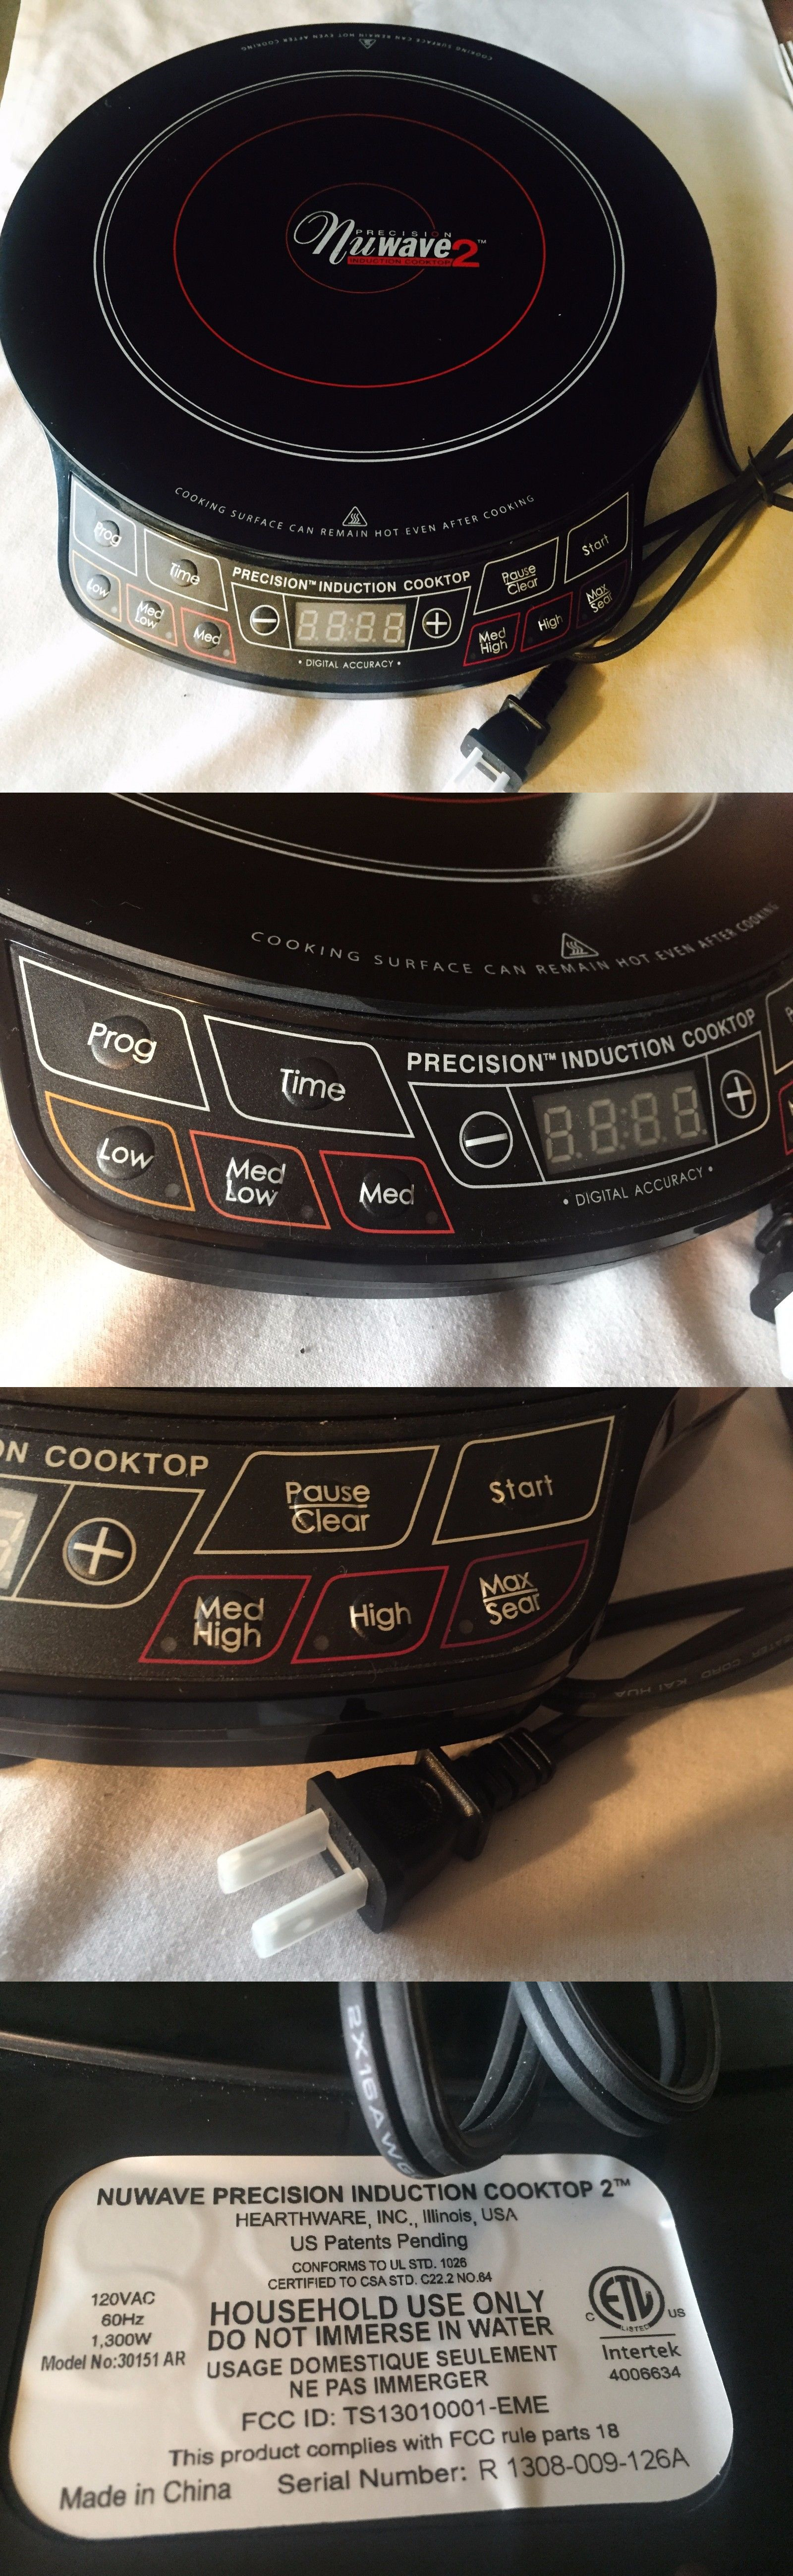 burners and hot plates 177751 precision nuwave 2 induction cooktop